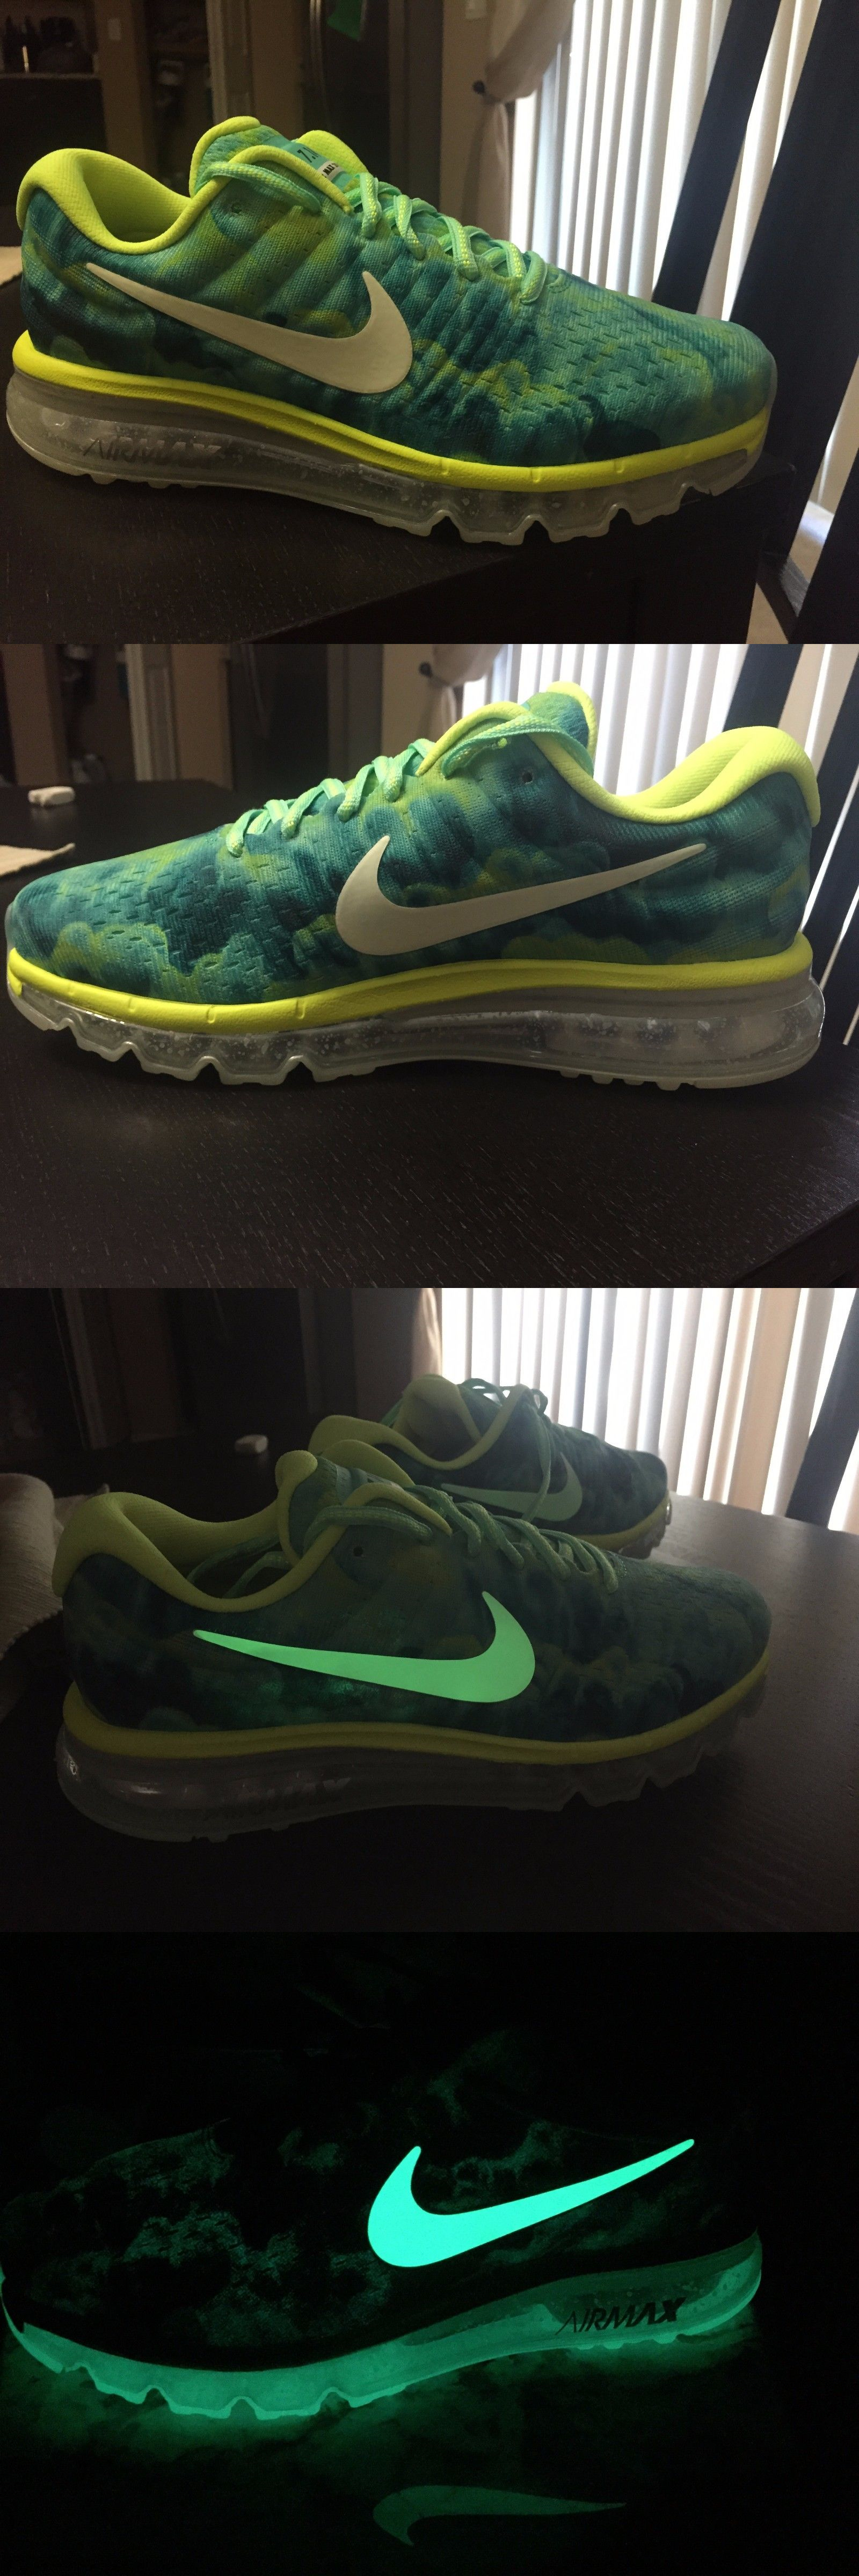 Athletic 95672: Nike Air Max 2017 Id Women S Running Shoes (Size 9